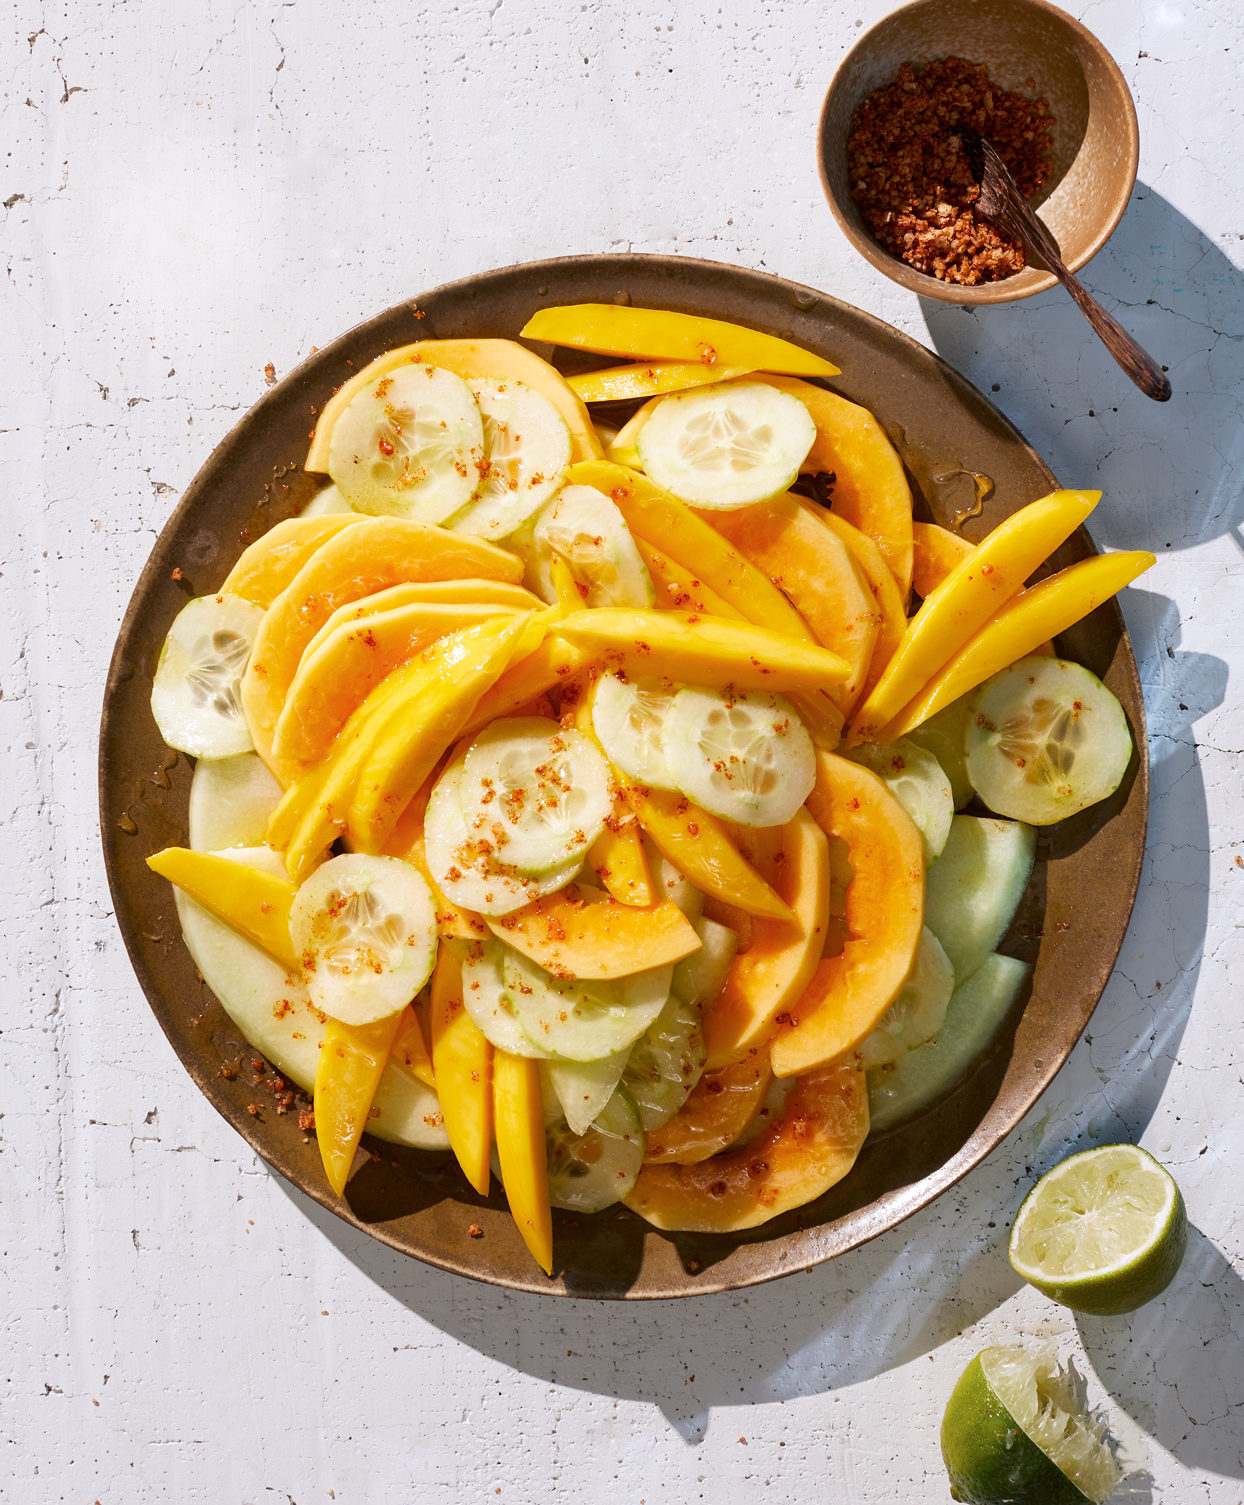 Mango, Papaya, and Melon Salad